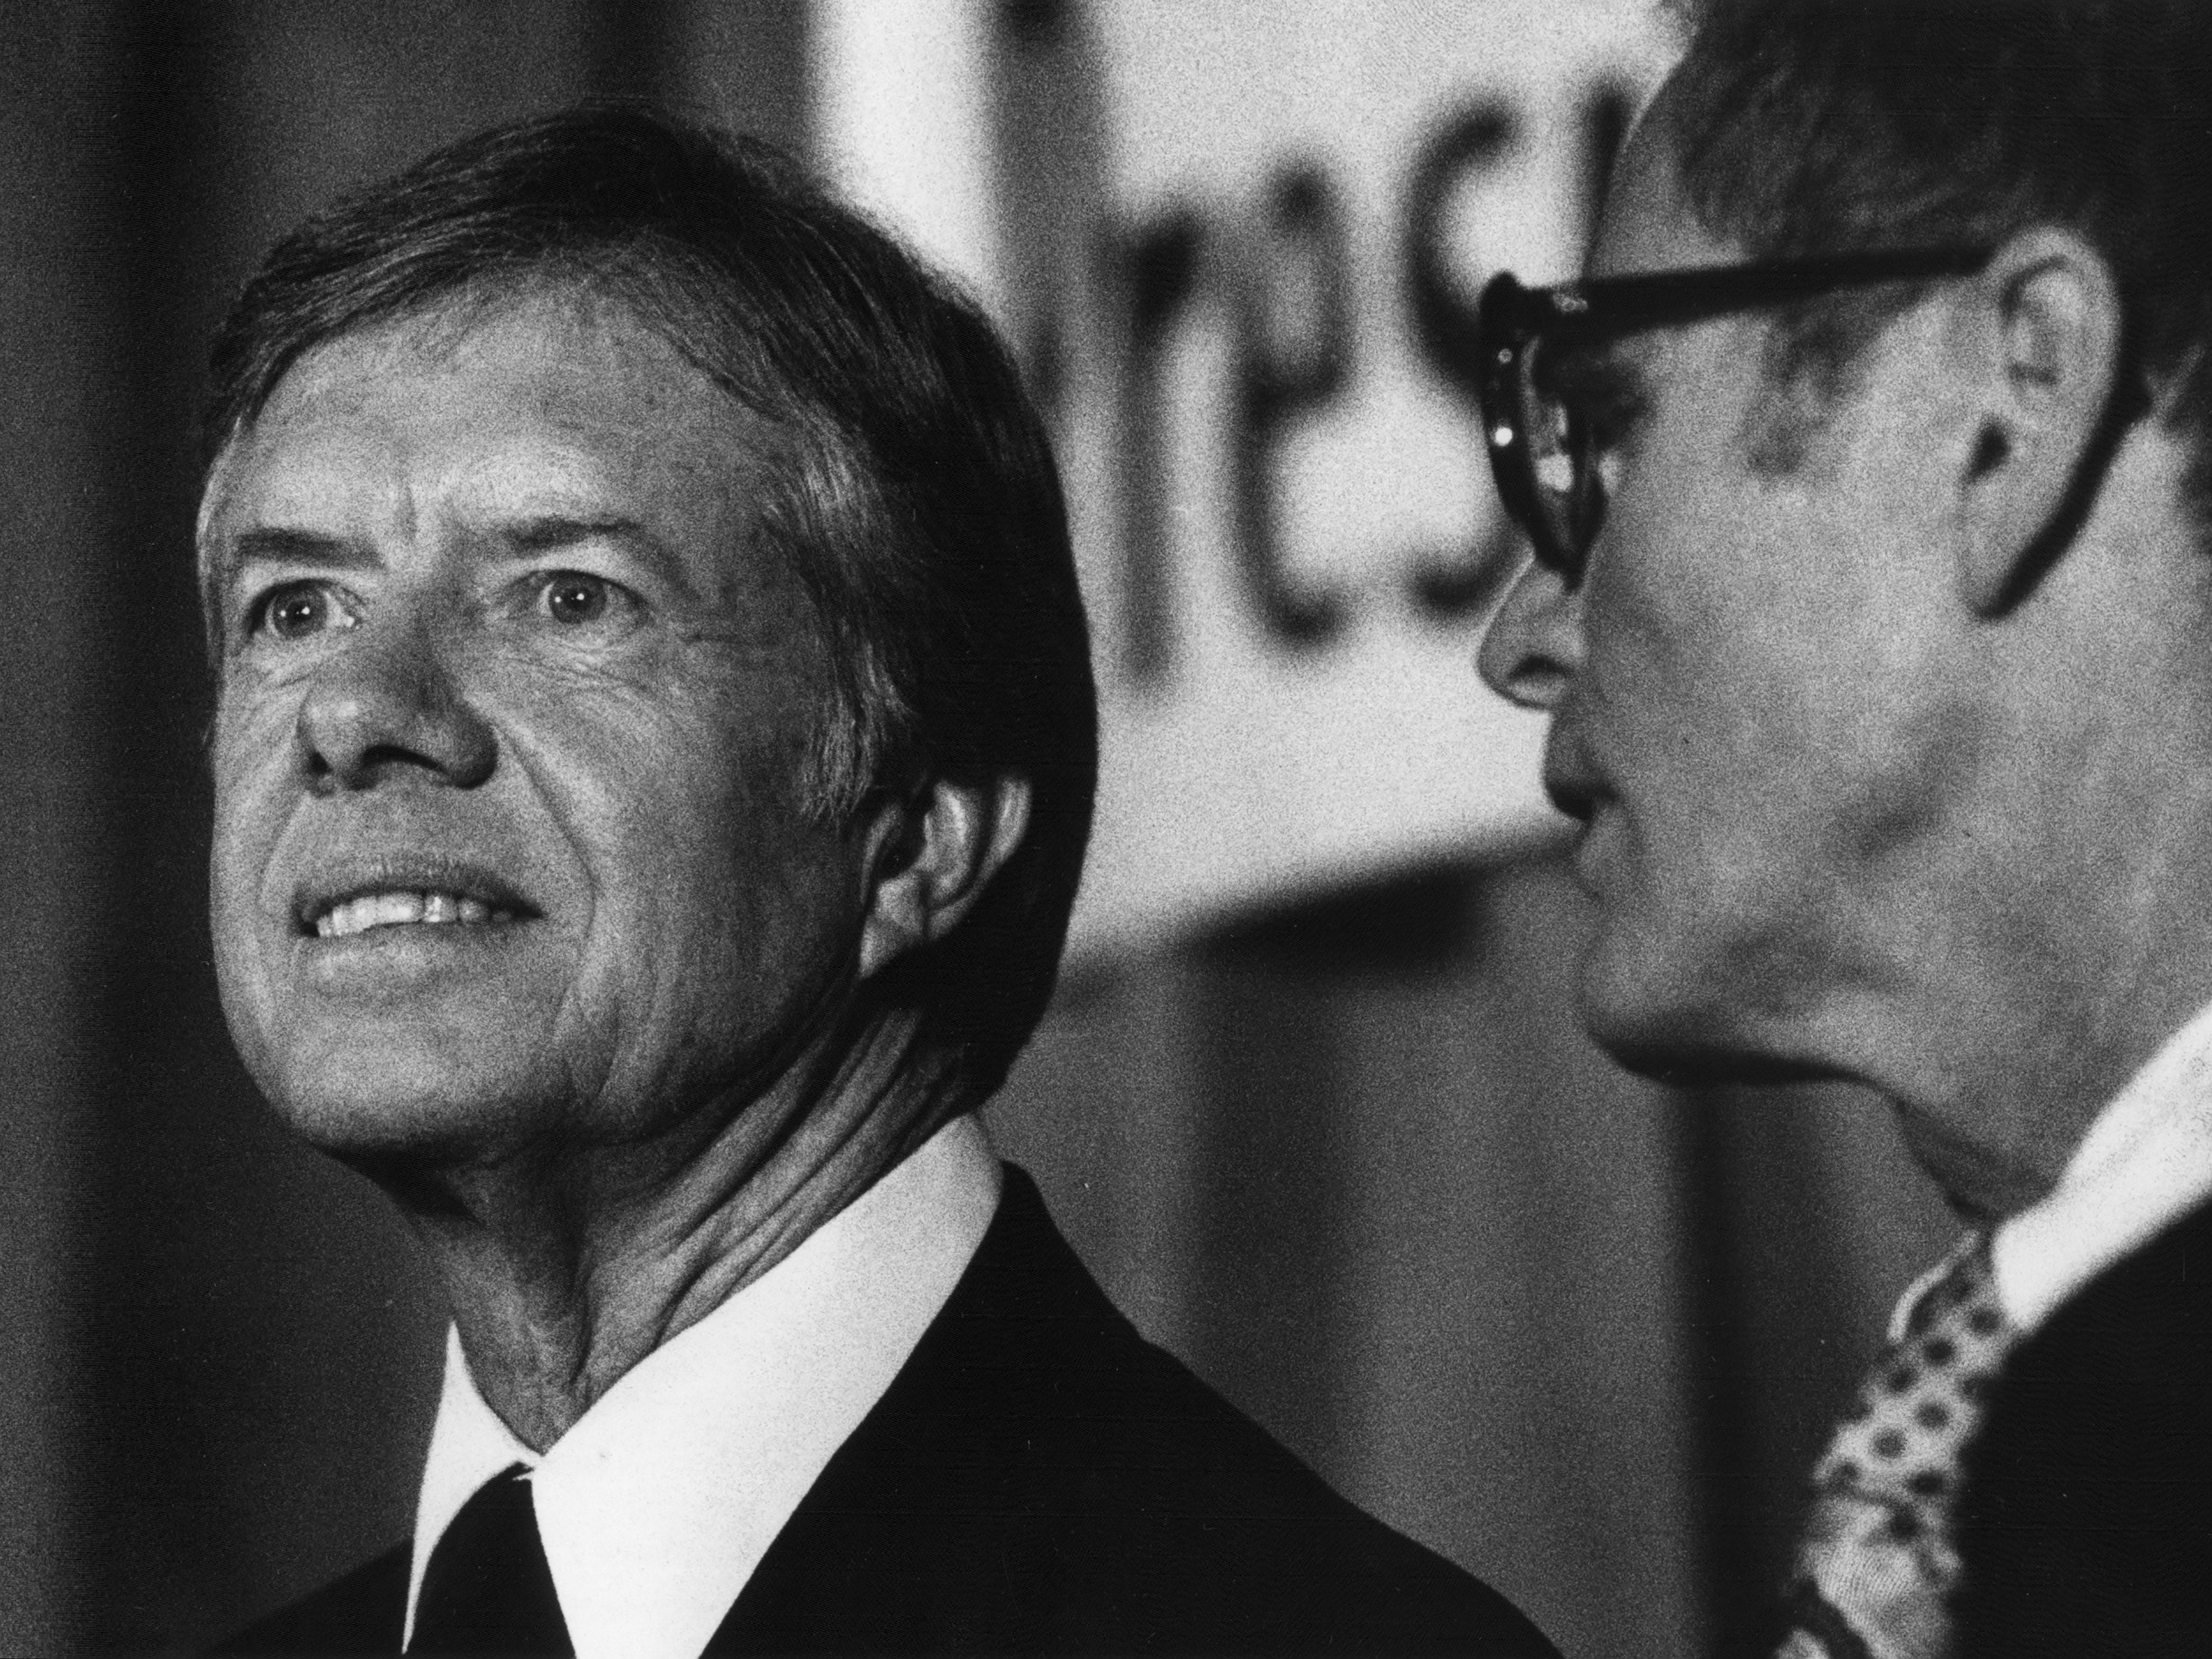 President Carter listens to speakers during a conference held in East Rutherford, N.J on Oct. 25, 1979.